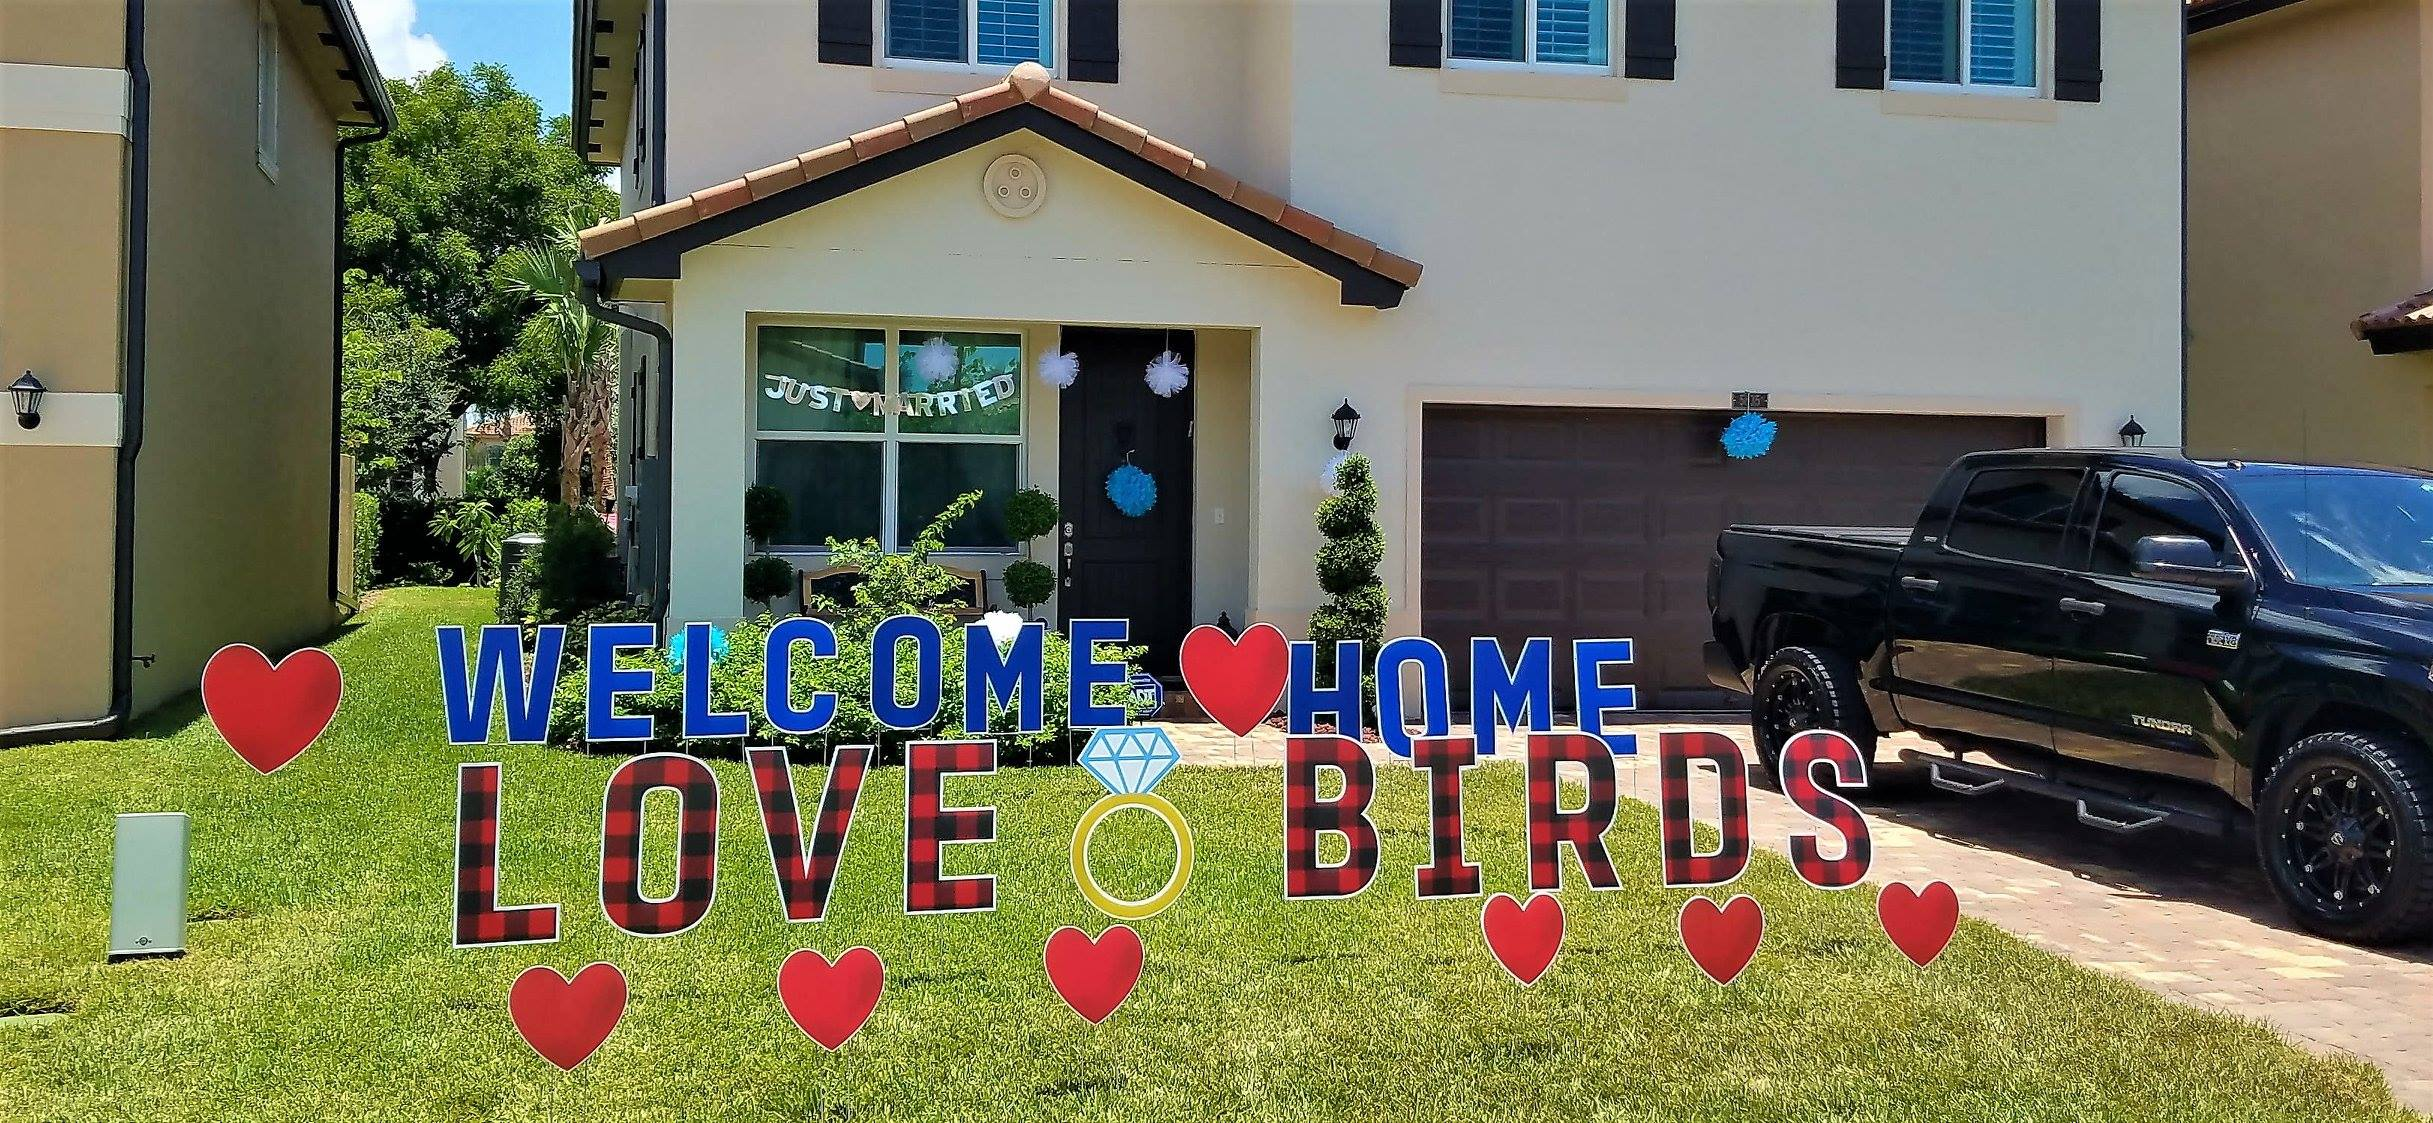 Welcome home from honeymoon